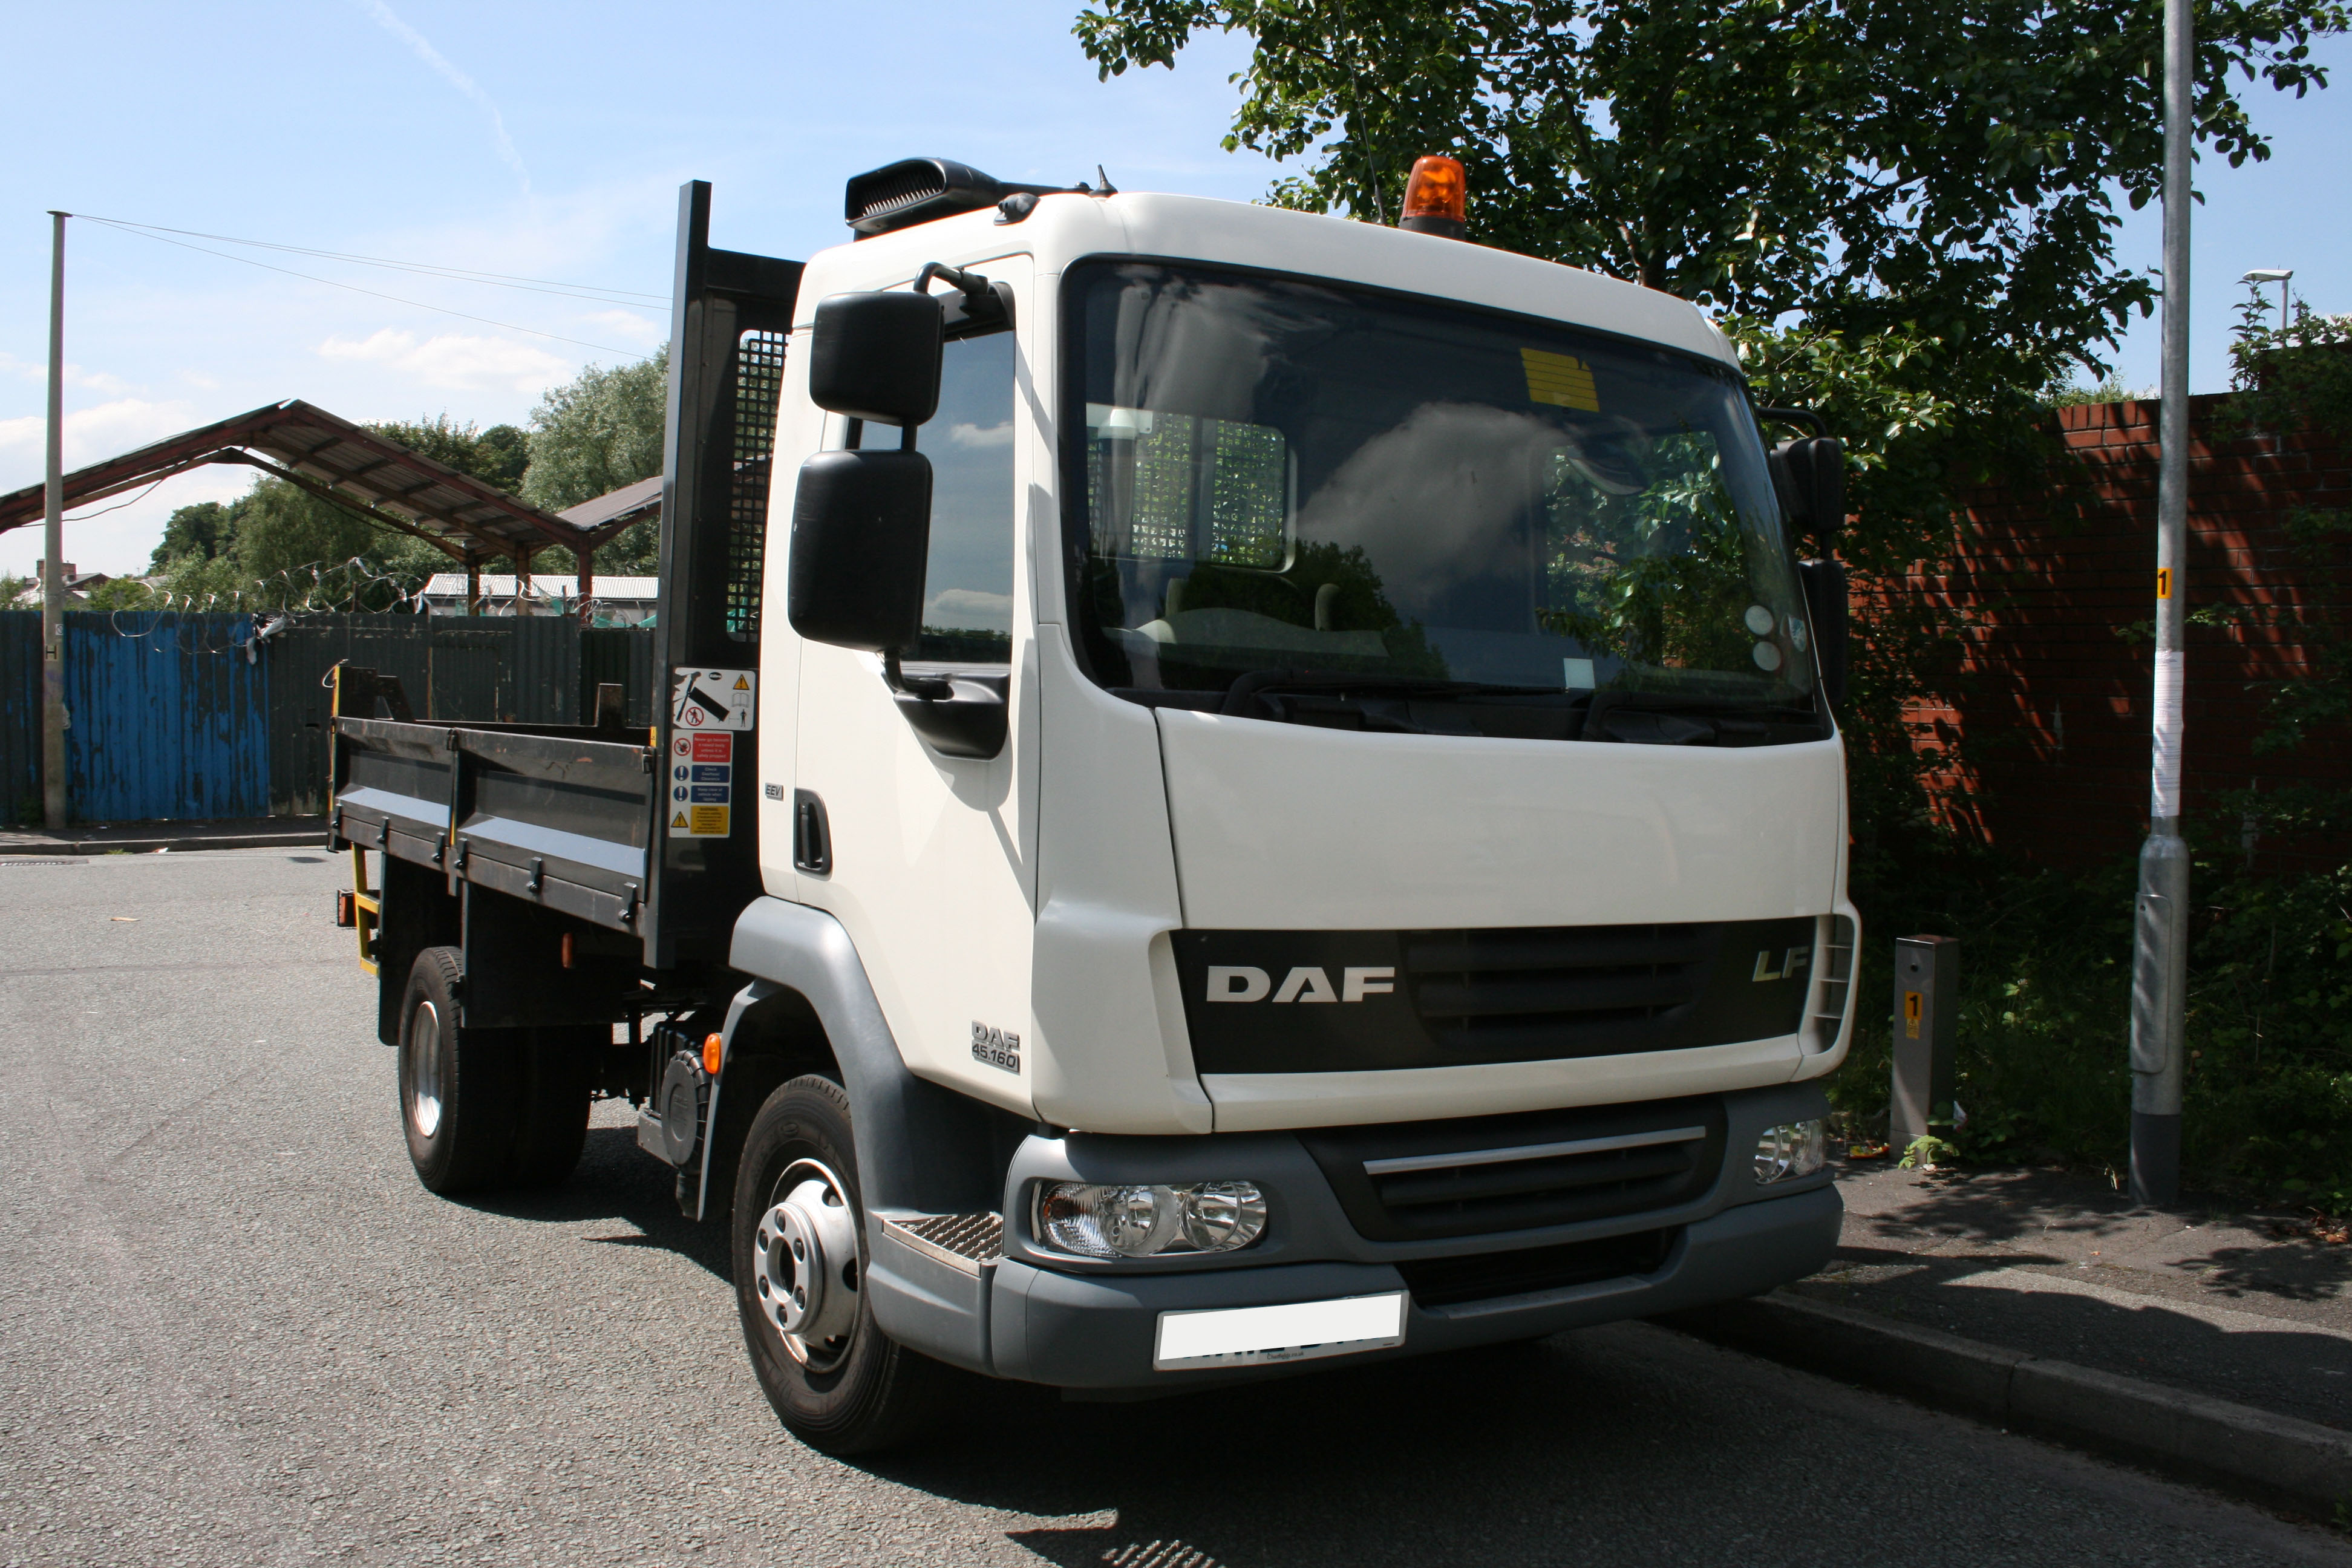 A 7.5 tonne DAF tipper (Not covered by self-drive insurance and £500 deposit required) for hire in Middleton